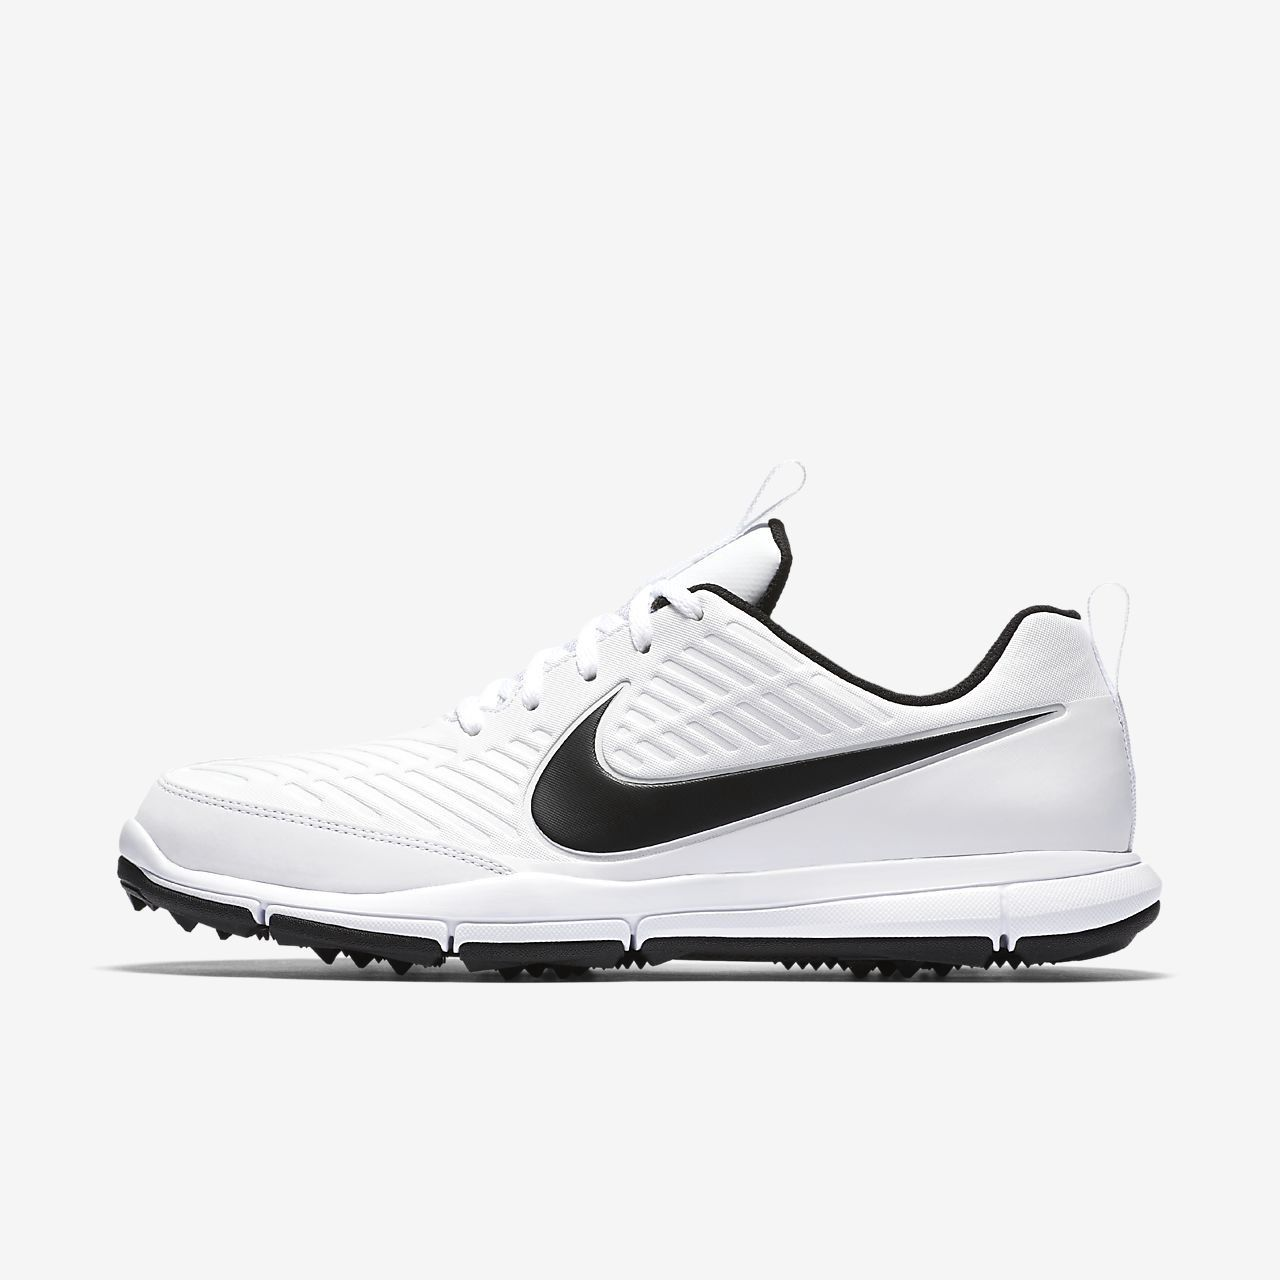 cb6871269fe5 Nike Explorer 2 (Wide) Men s Golf Shoe - 11.5